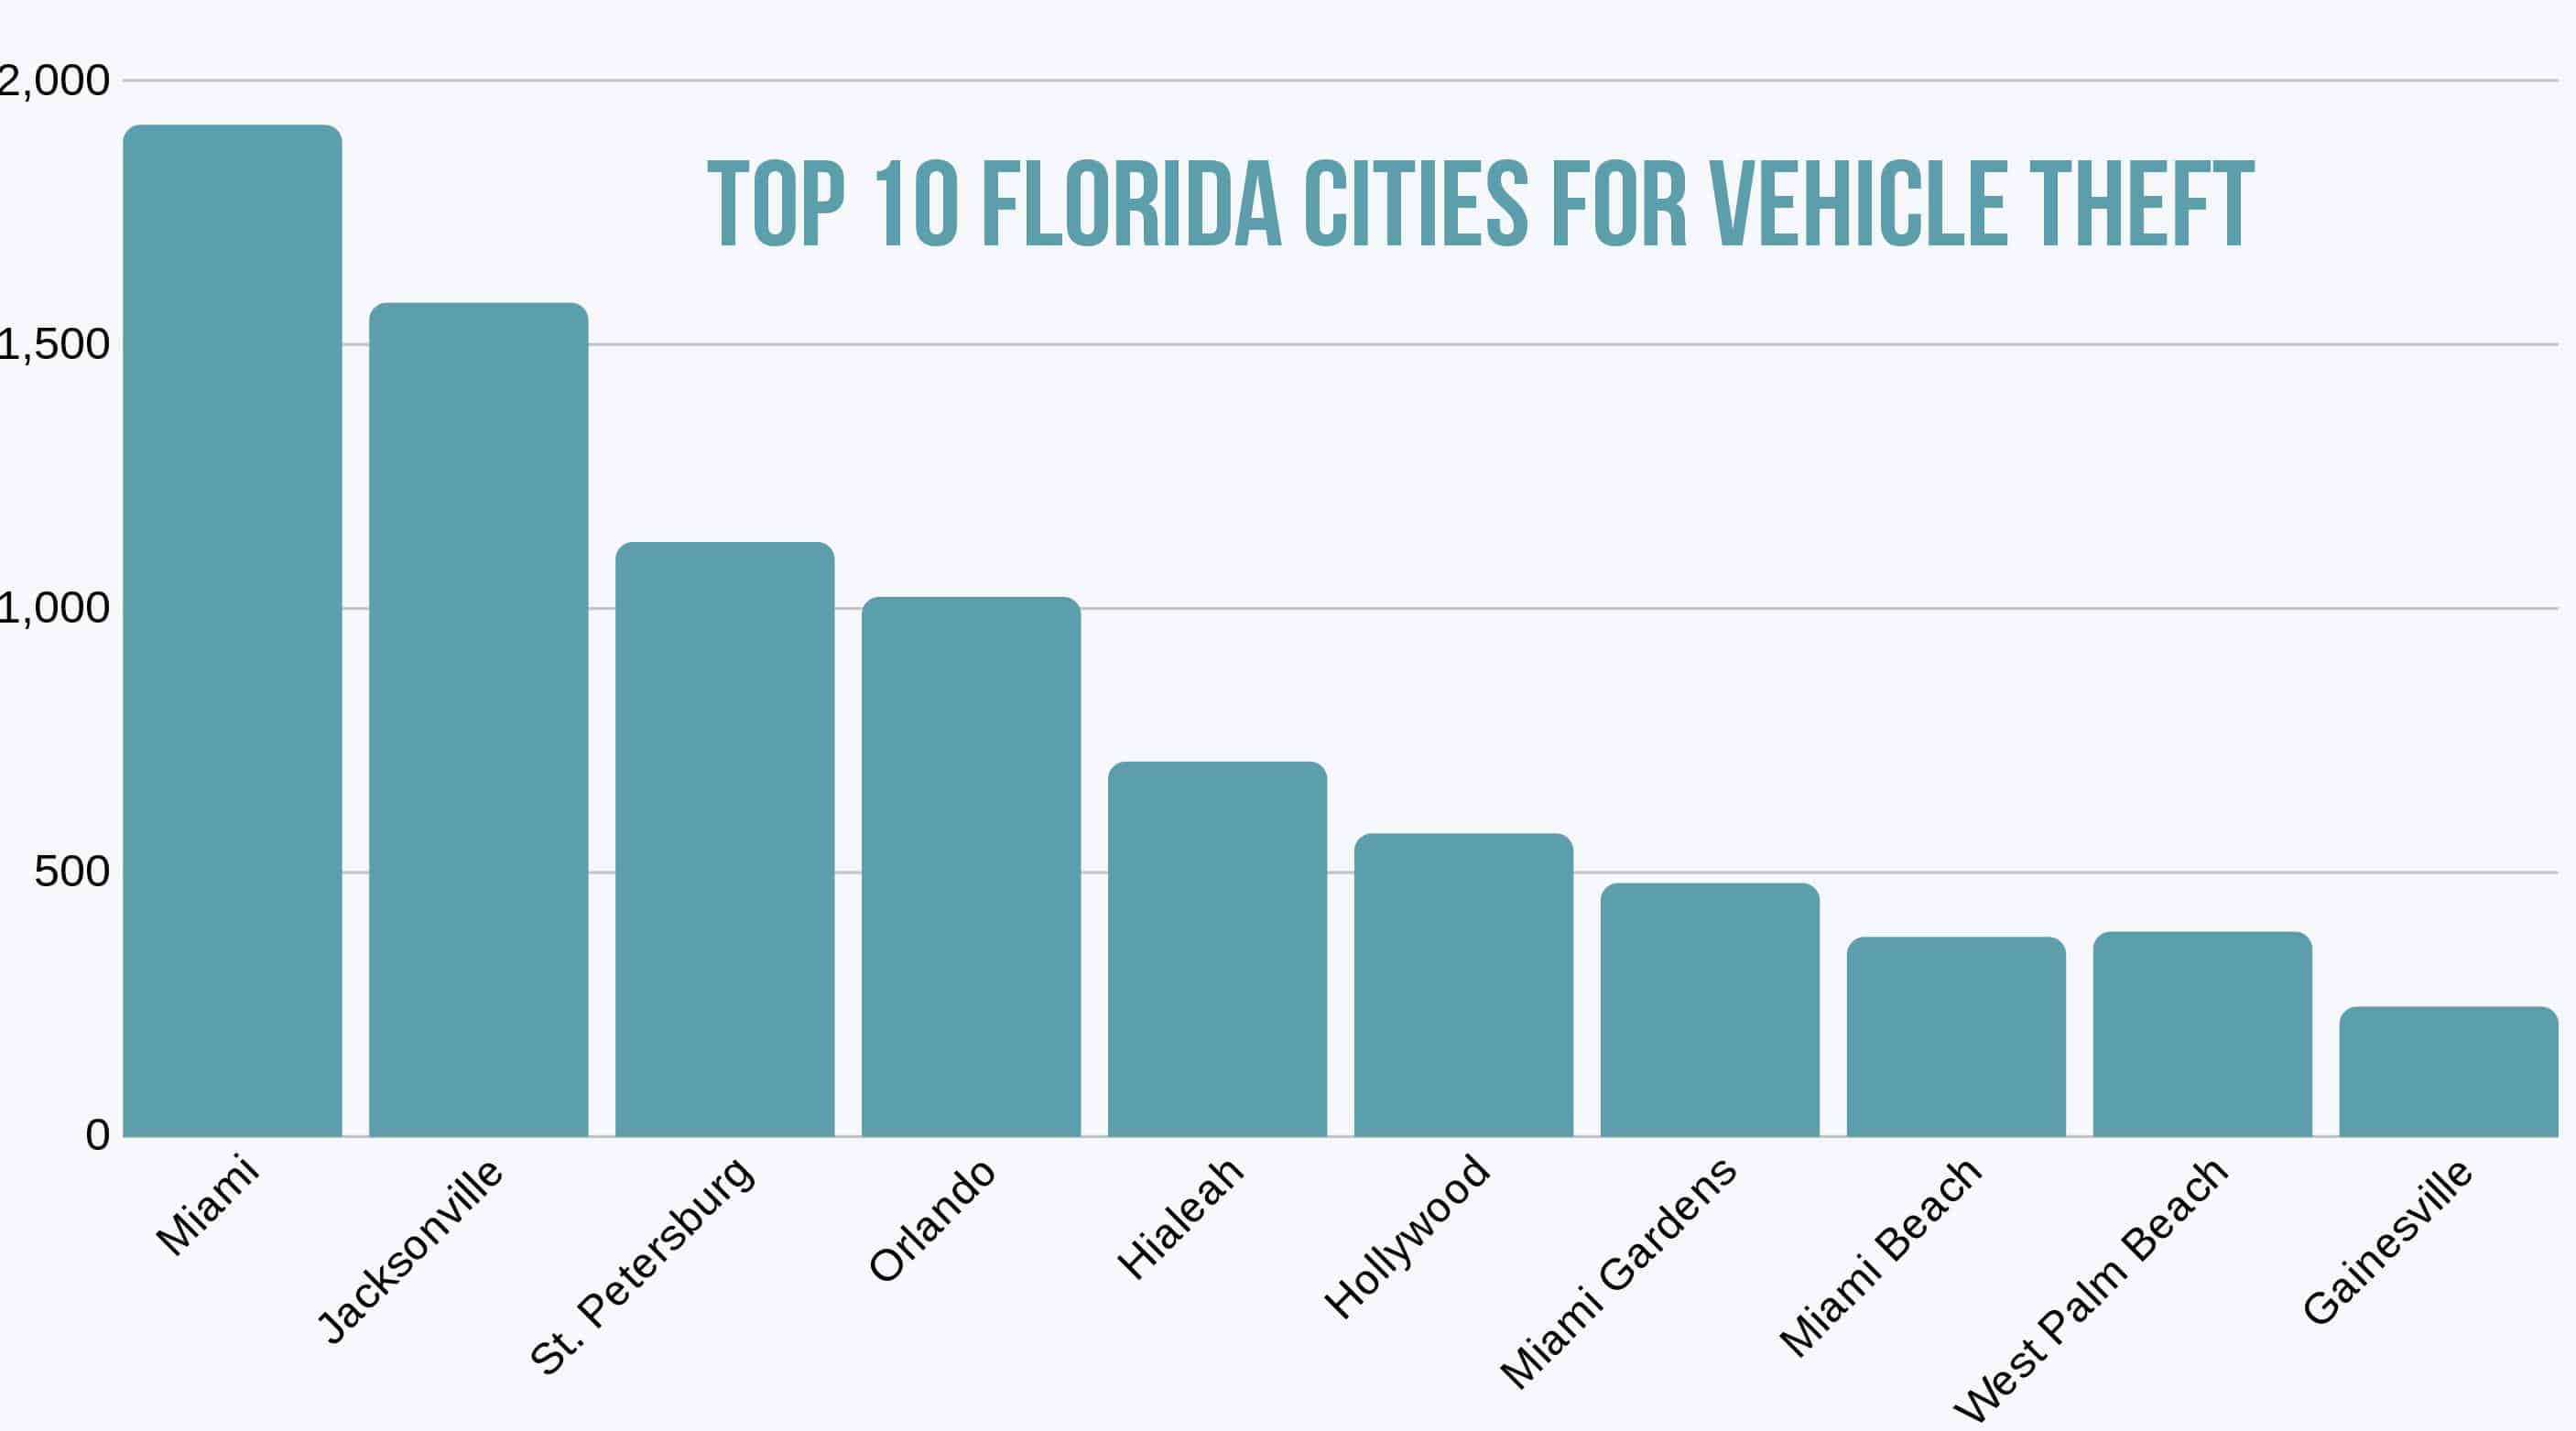 Top 10 Florida Cities for Vehicle Theft